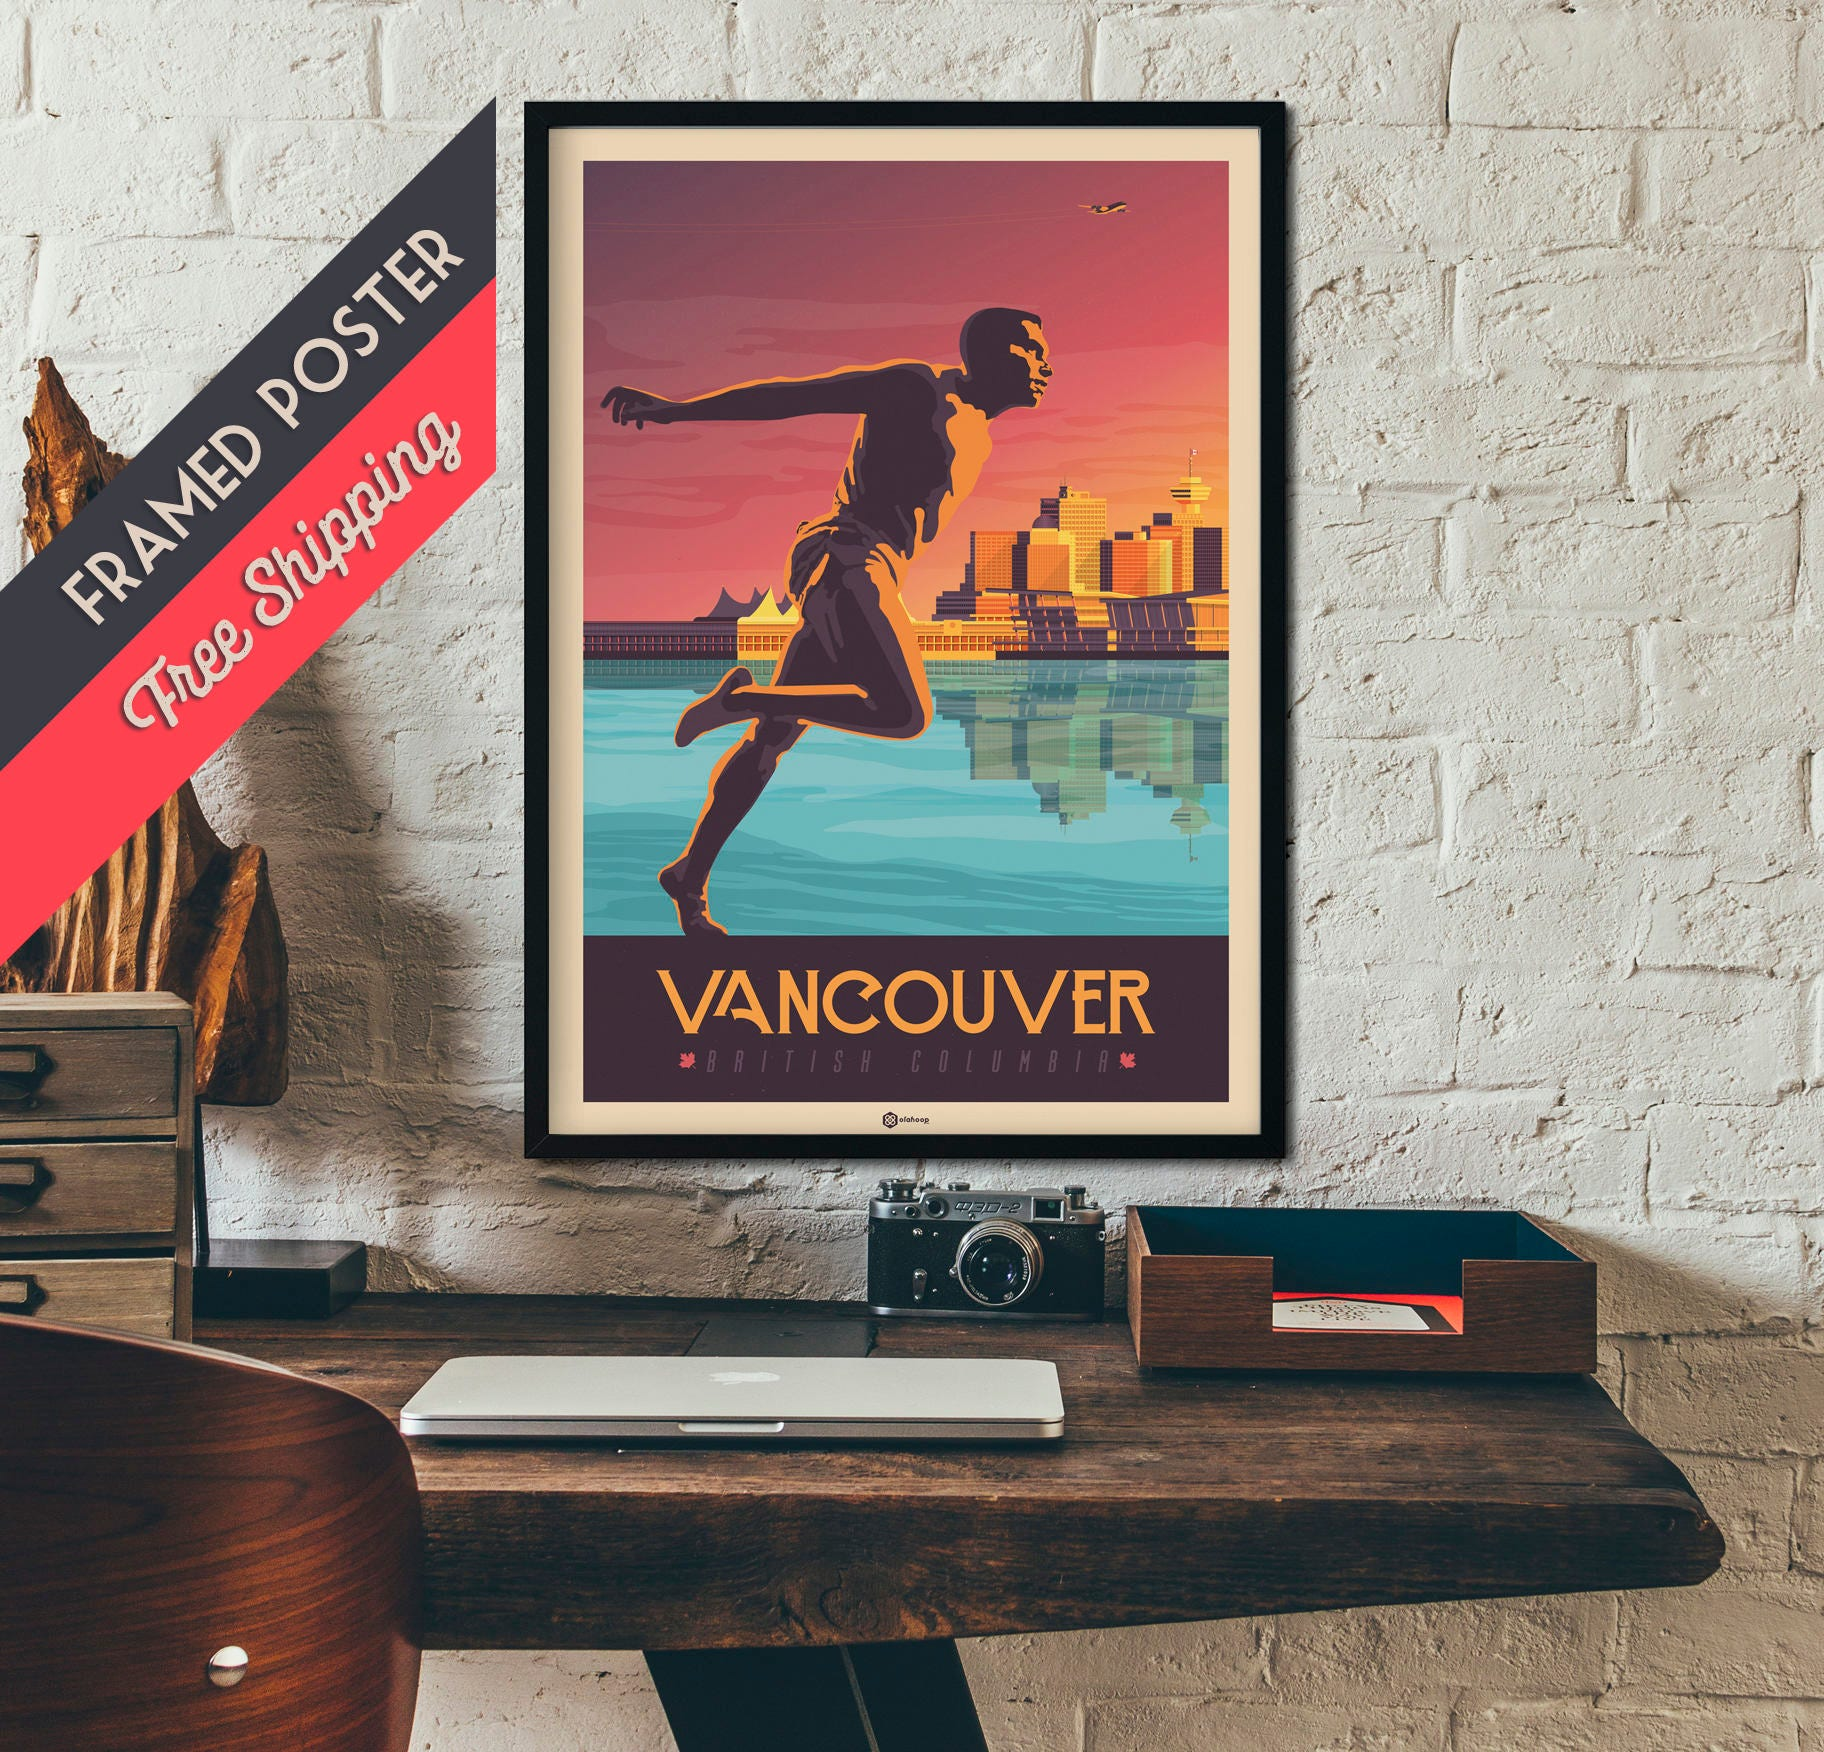 Vancouver Canada   Vintage Travel Poster, Framed Poster, Wall Art, Home  Decoration, Wall Decoration, Gift Idea, Retro Print